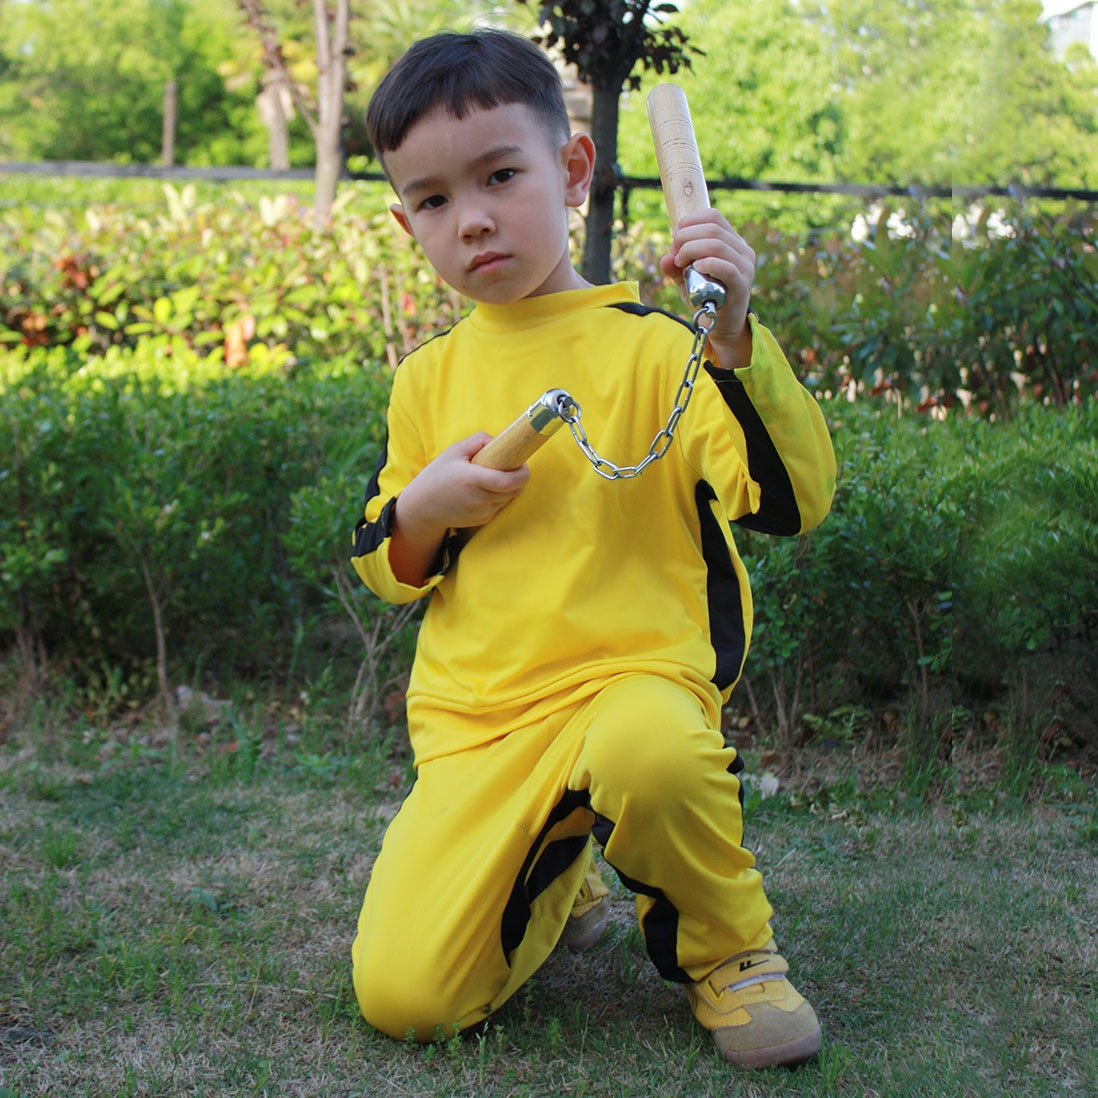 Bruce Lee Wing Chun Kung Fu 3 Pieces Suit Costume Martial Arts Outfit Uniform